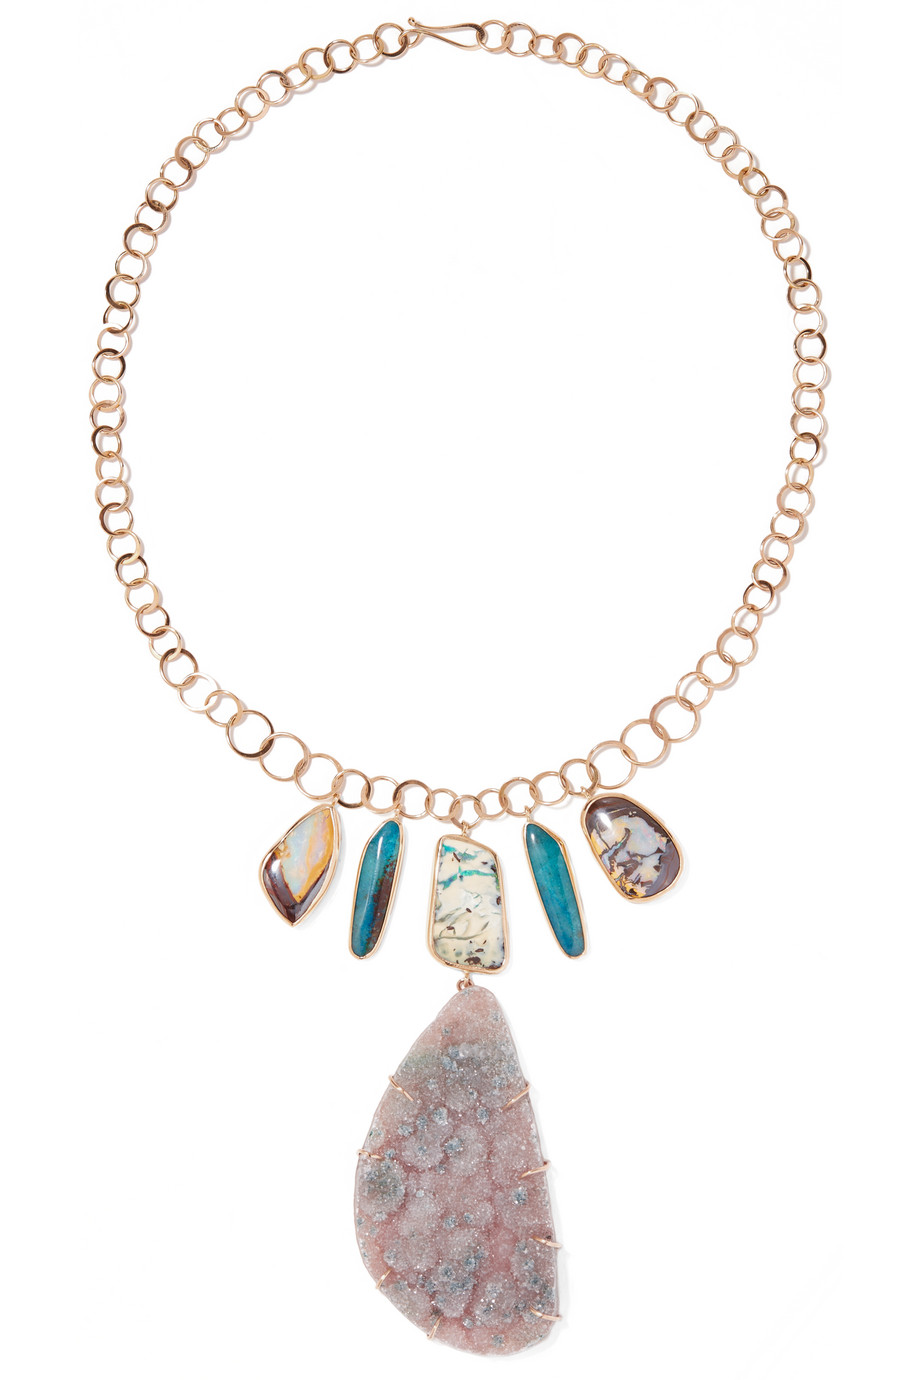 14-Karat Gold, Opal and Druzy Necklace, Melissa Joy Manning, Women's